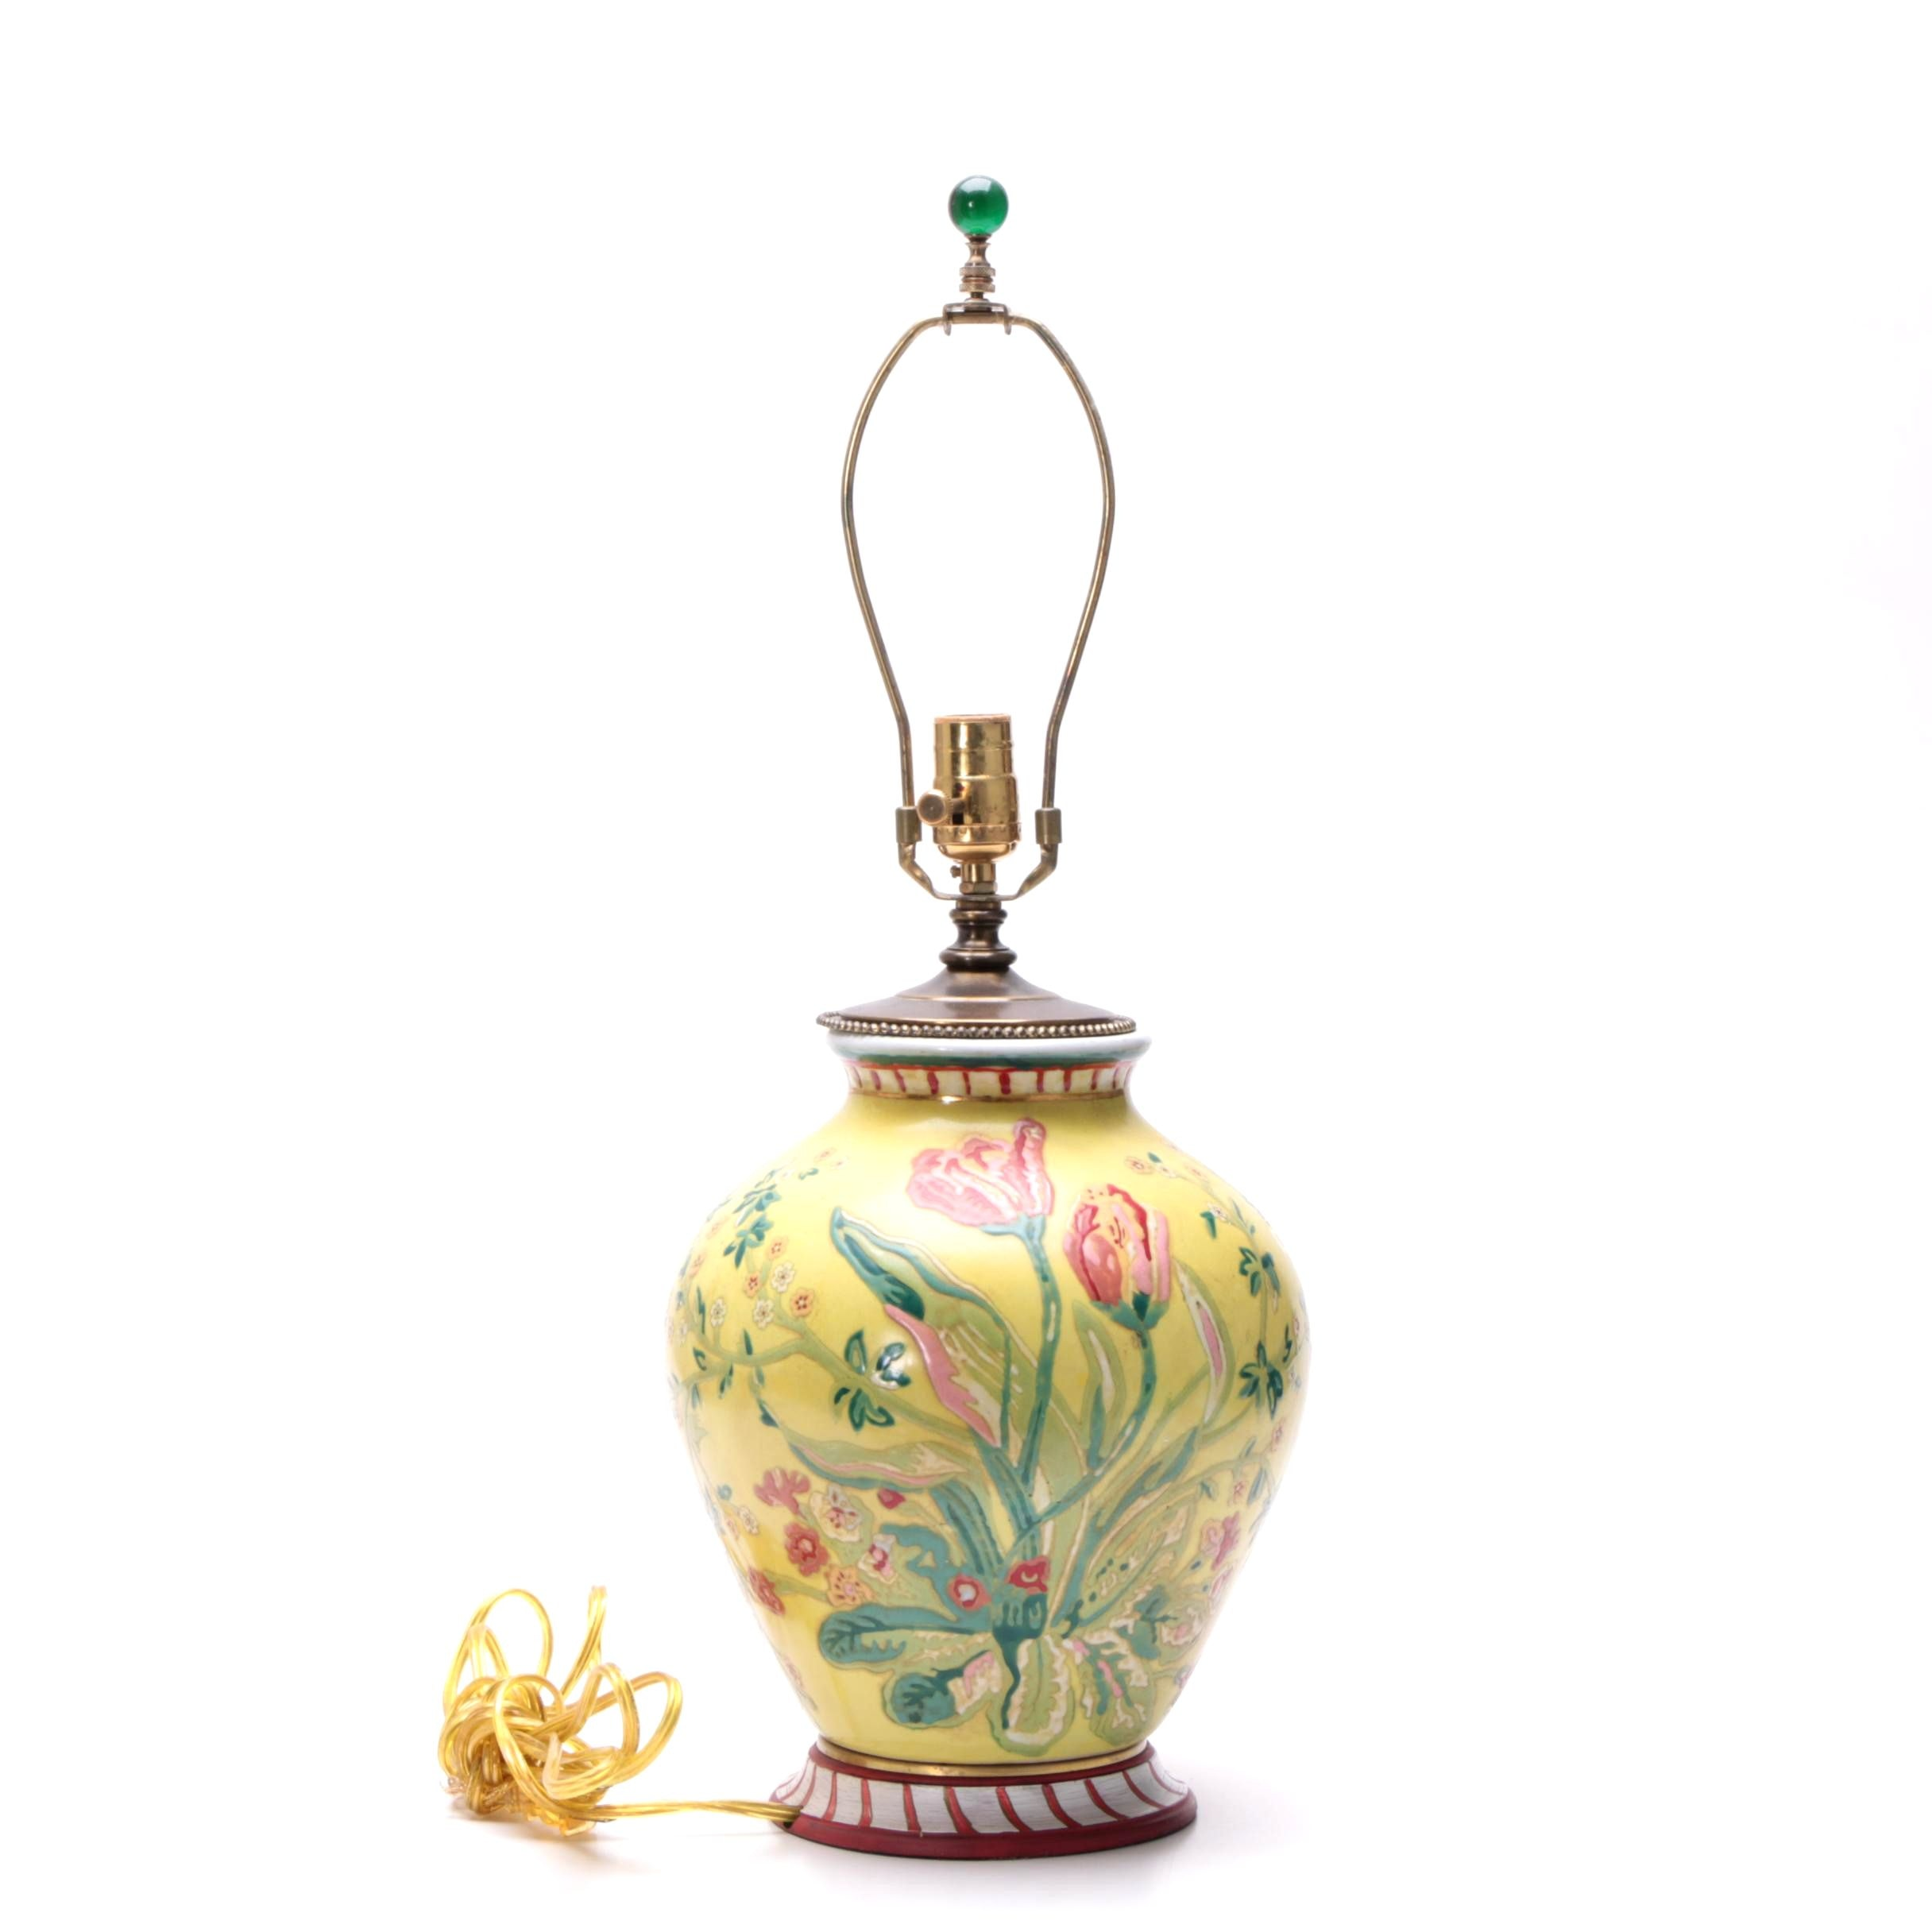 Ceramic and Brass Table Lamp with a Tulip Motif Attributed to Excelsior